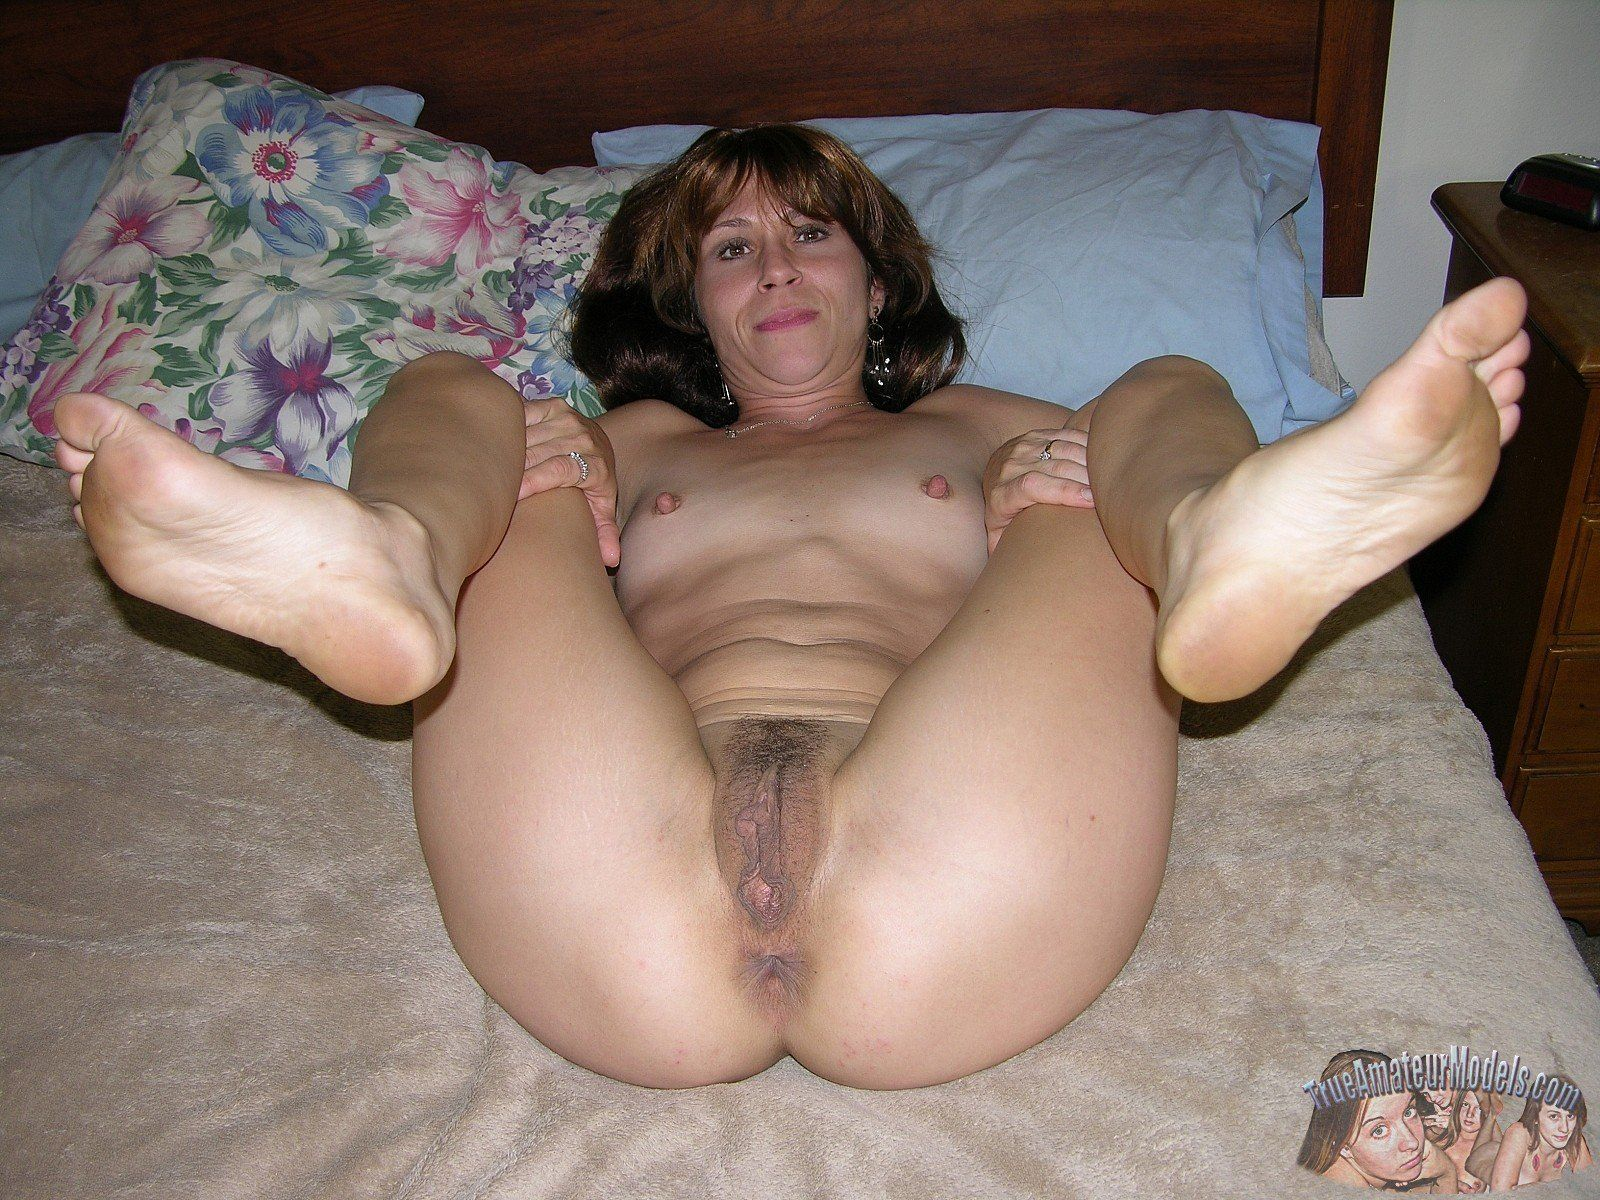 Amateur self nude